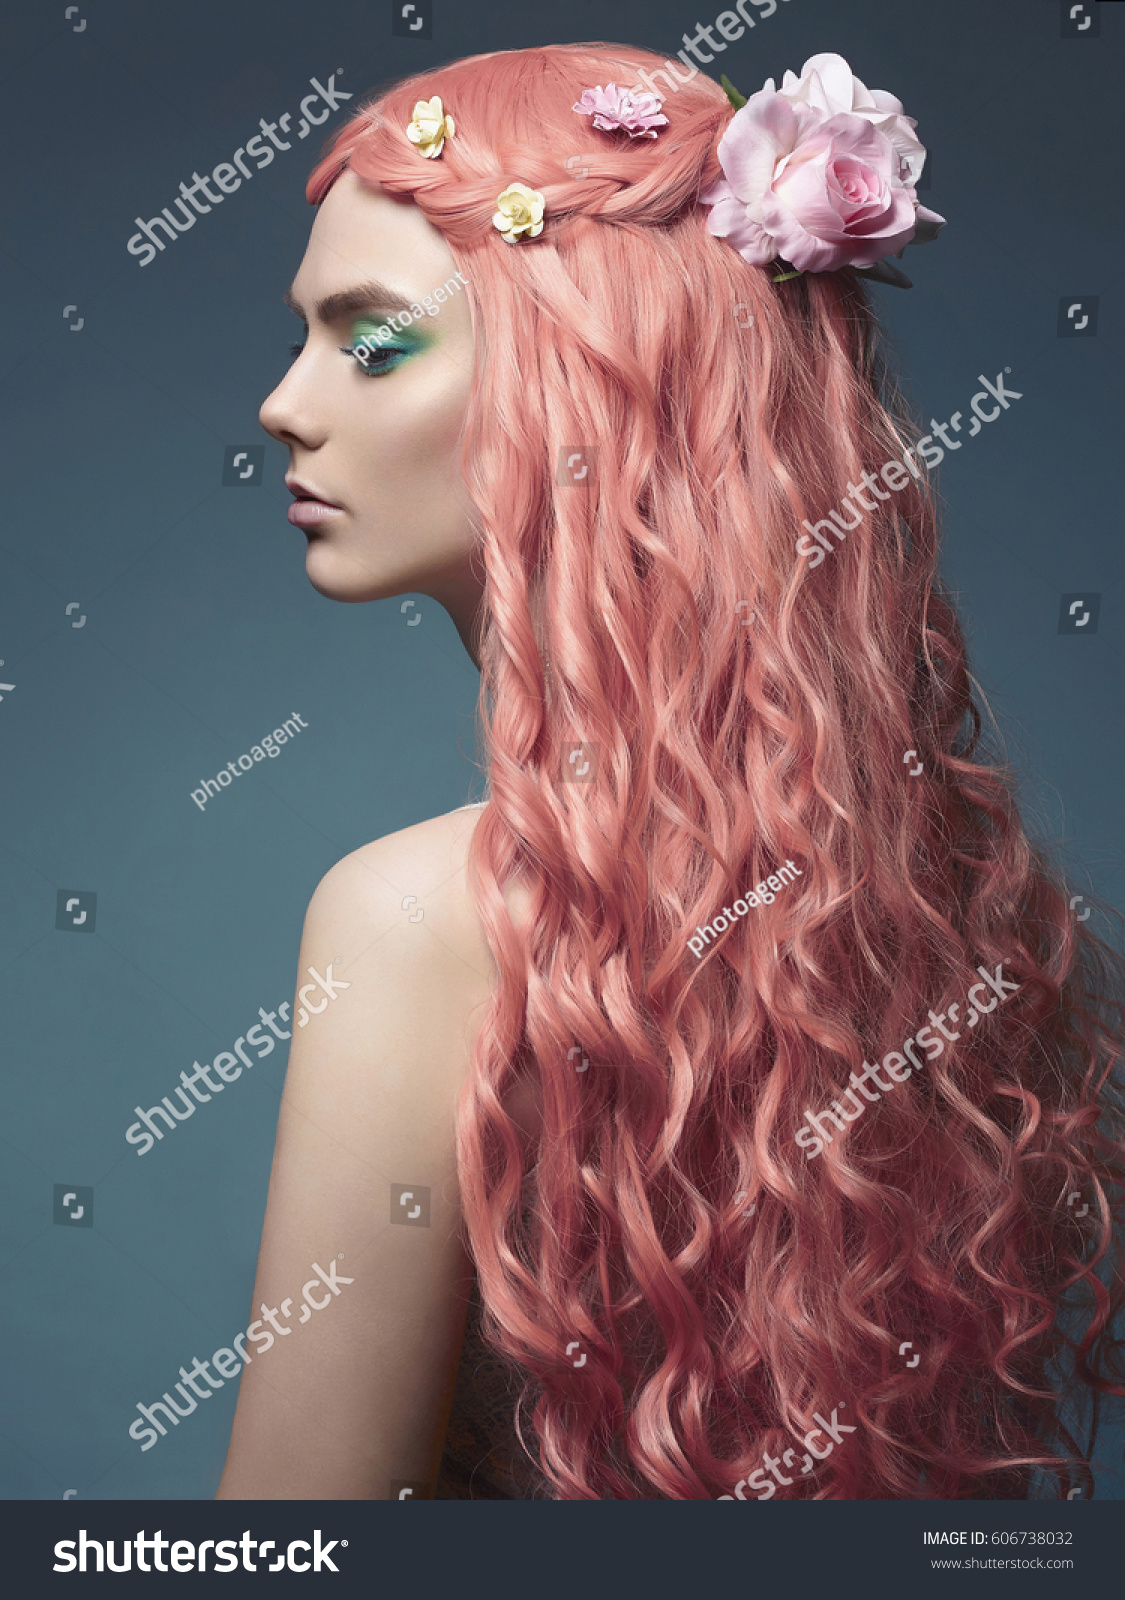 Beautiful girl long pink hair flowers stock photo royalty free beautiful girl with long pink hair and flowers in them fabulous spring portrait of young izmirmasajfo